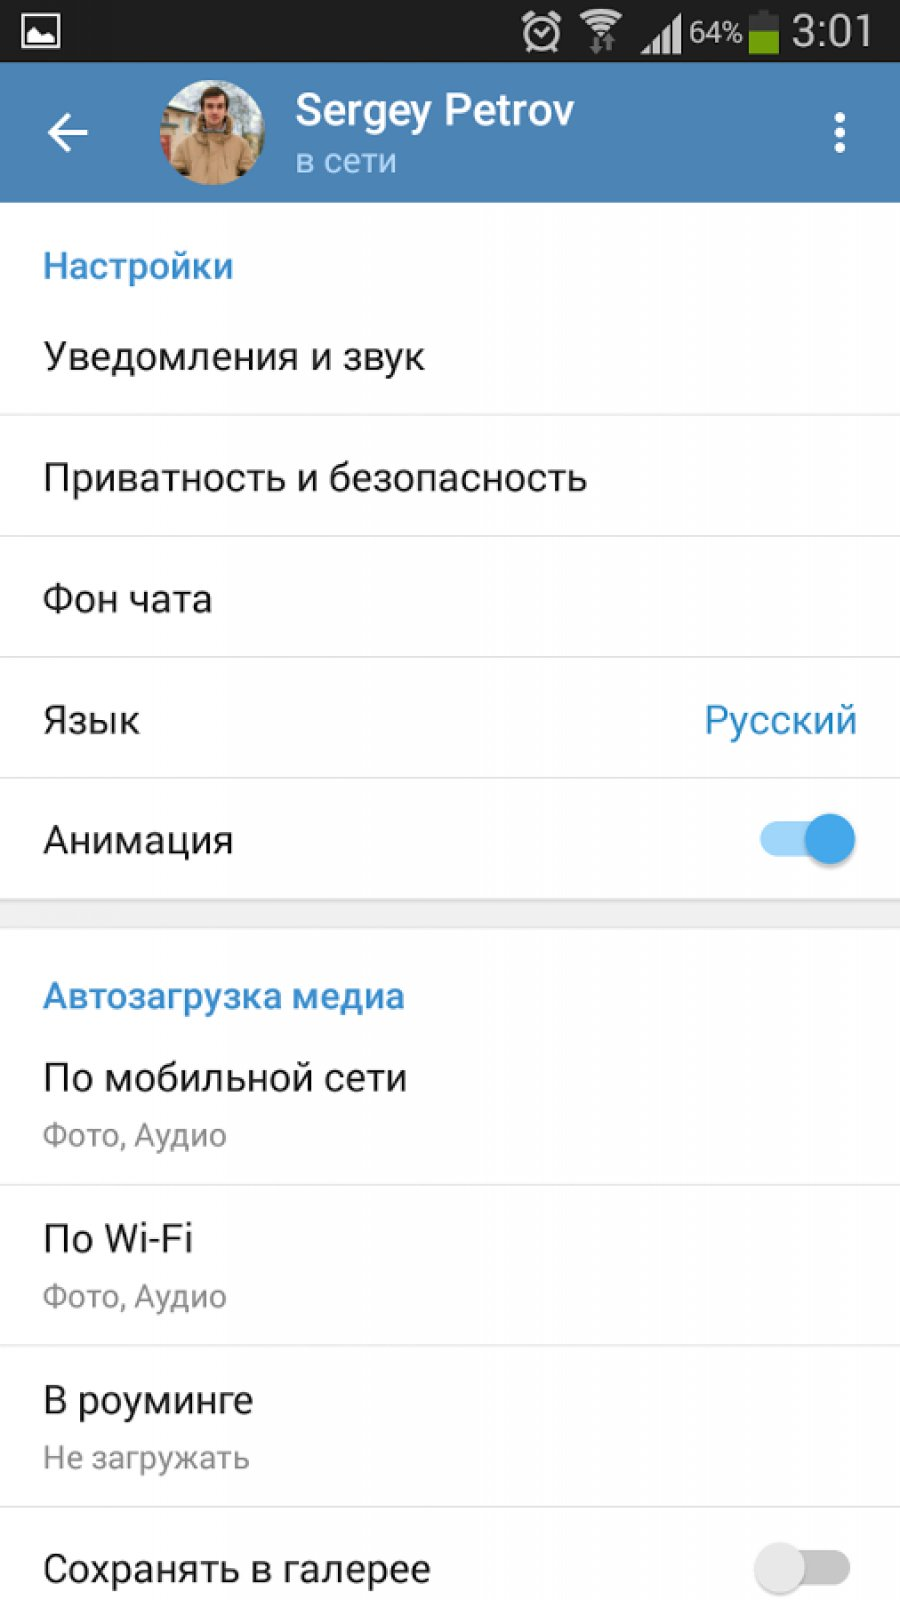 Telegram на русском для iOS (iPhone, iPad, iPod) 73